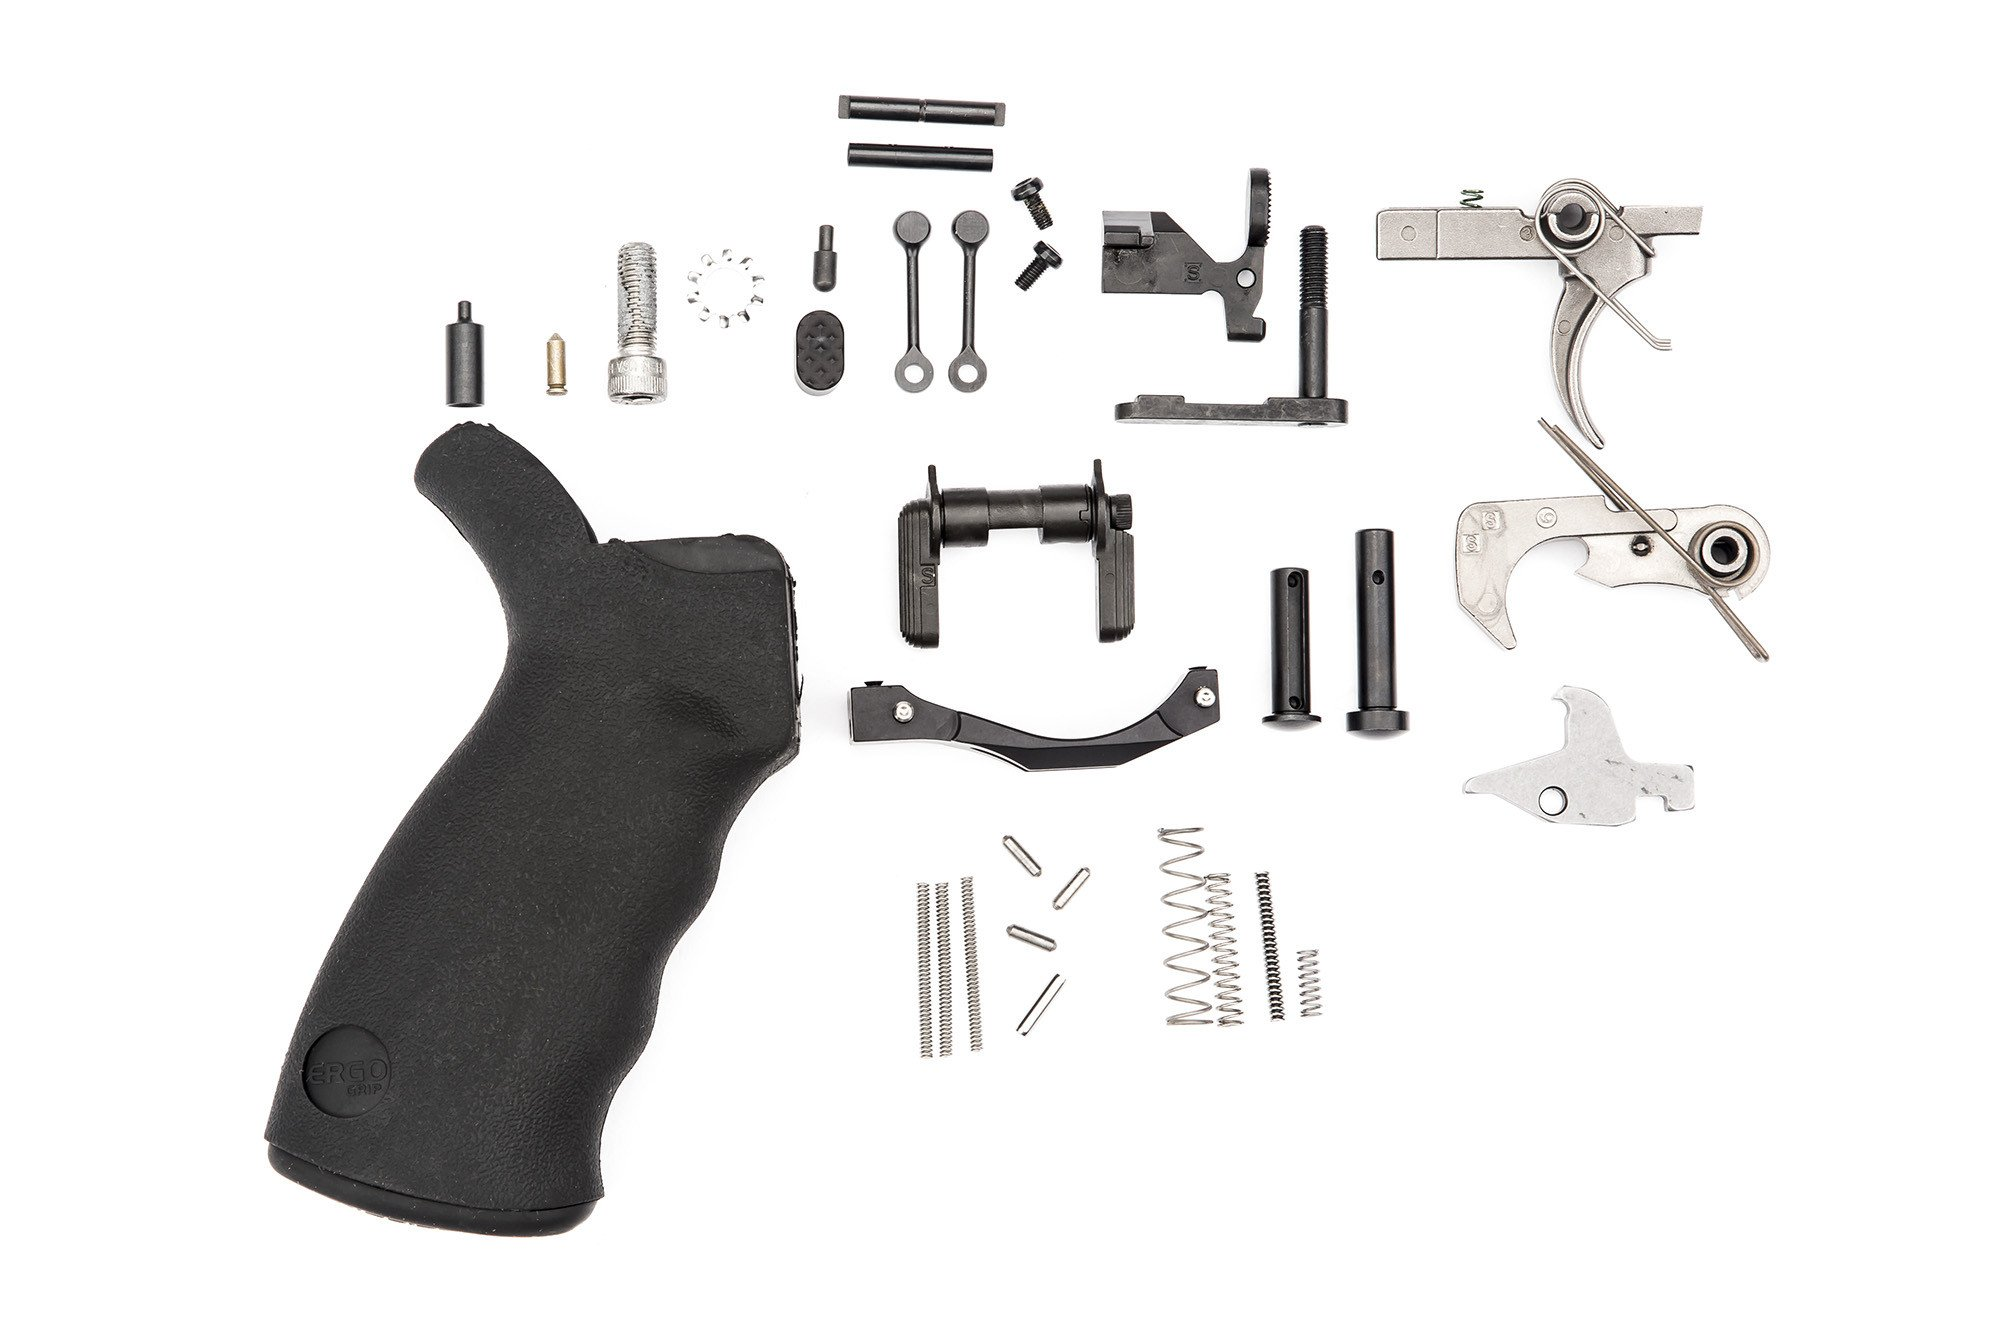 hight resolution of enhanced lower parts kit